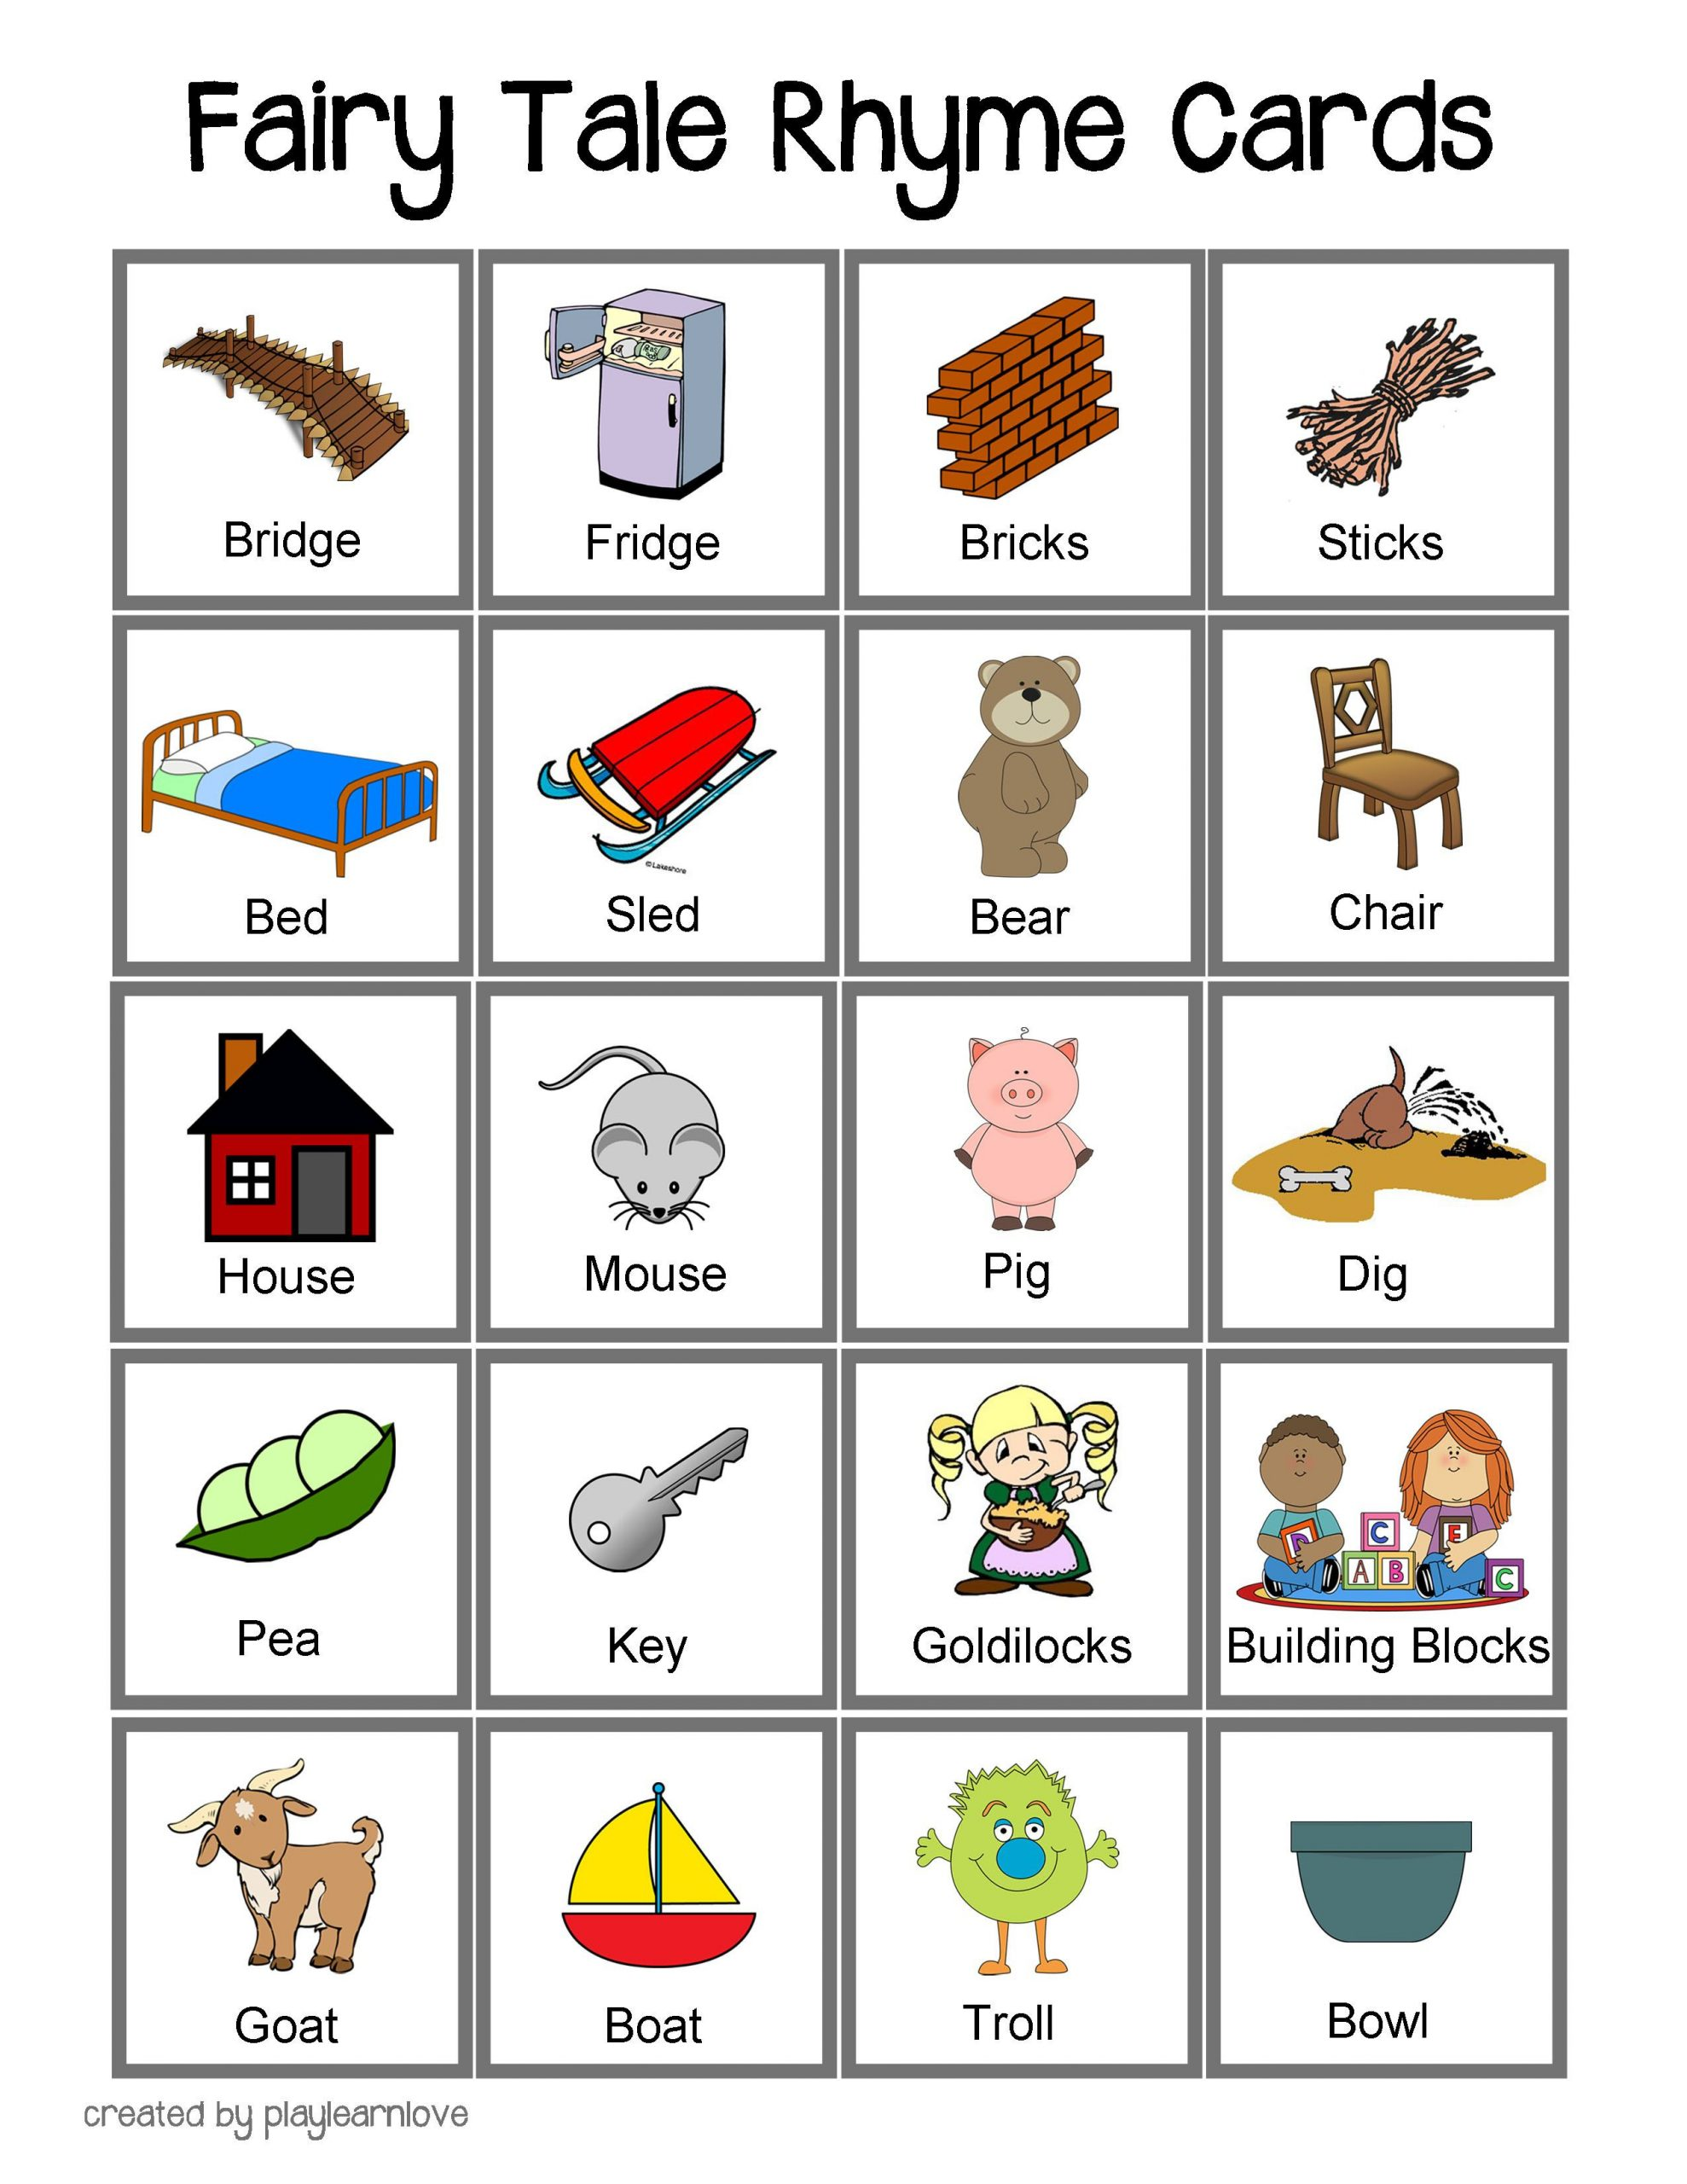 Fairy Tale Rhyme Cards: Toddler And Preschooler Rhyming Game